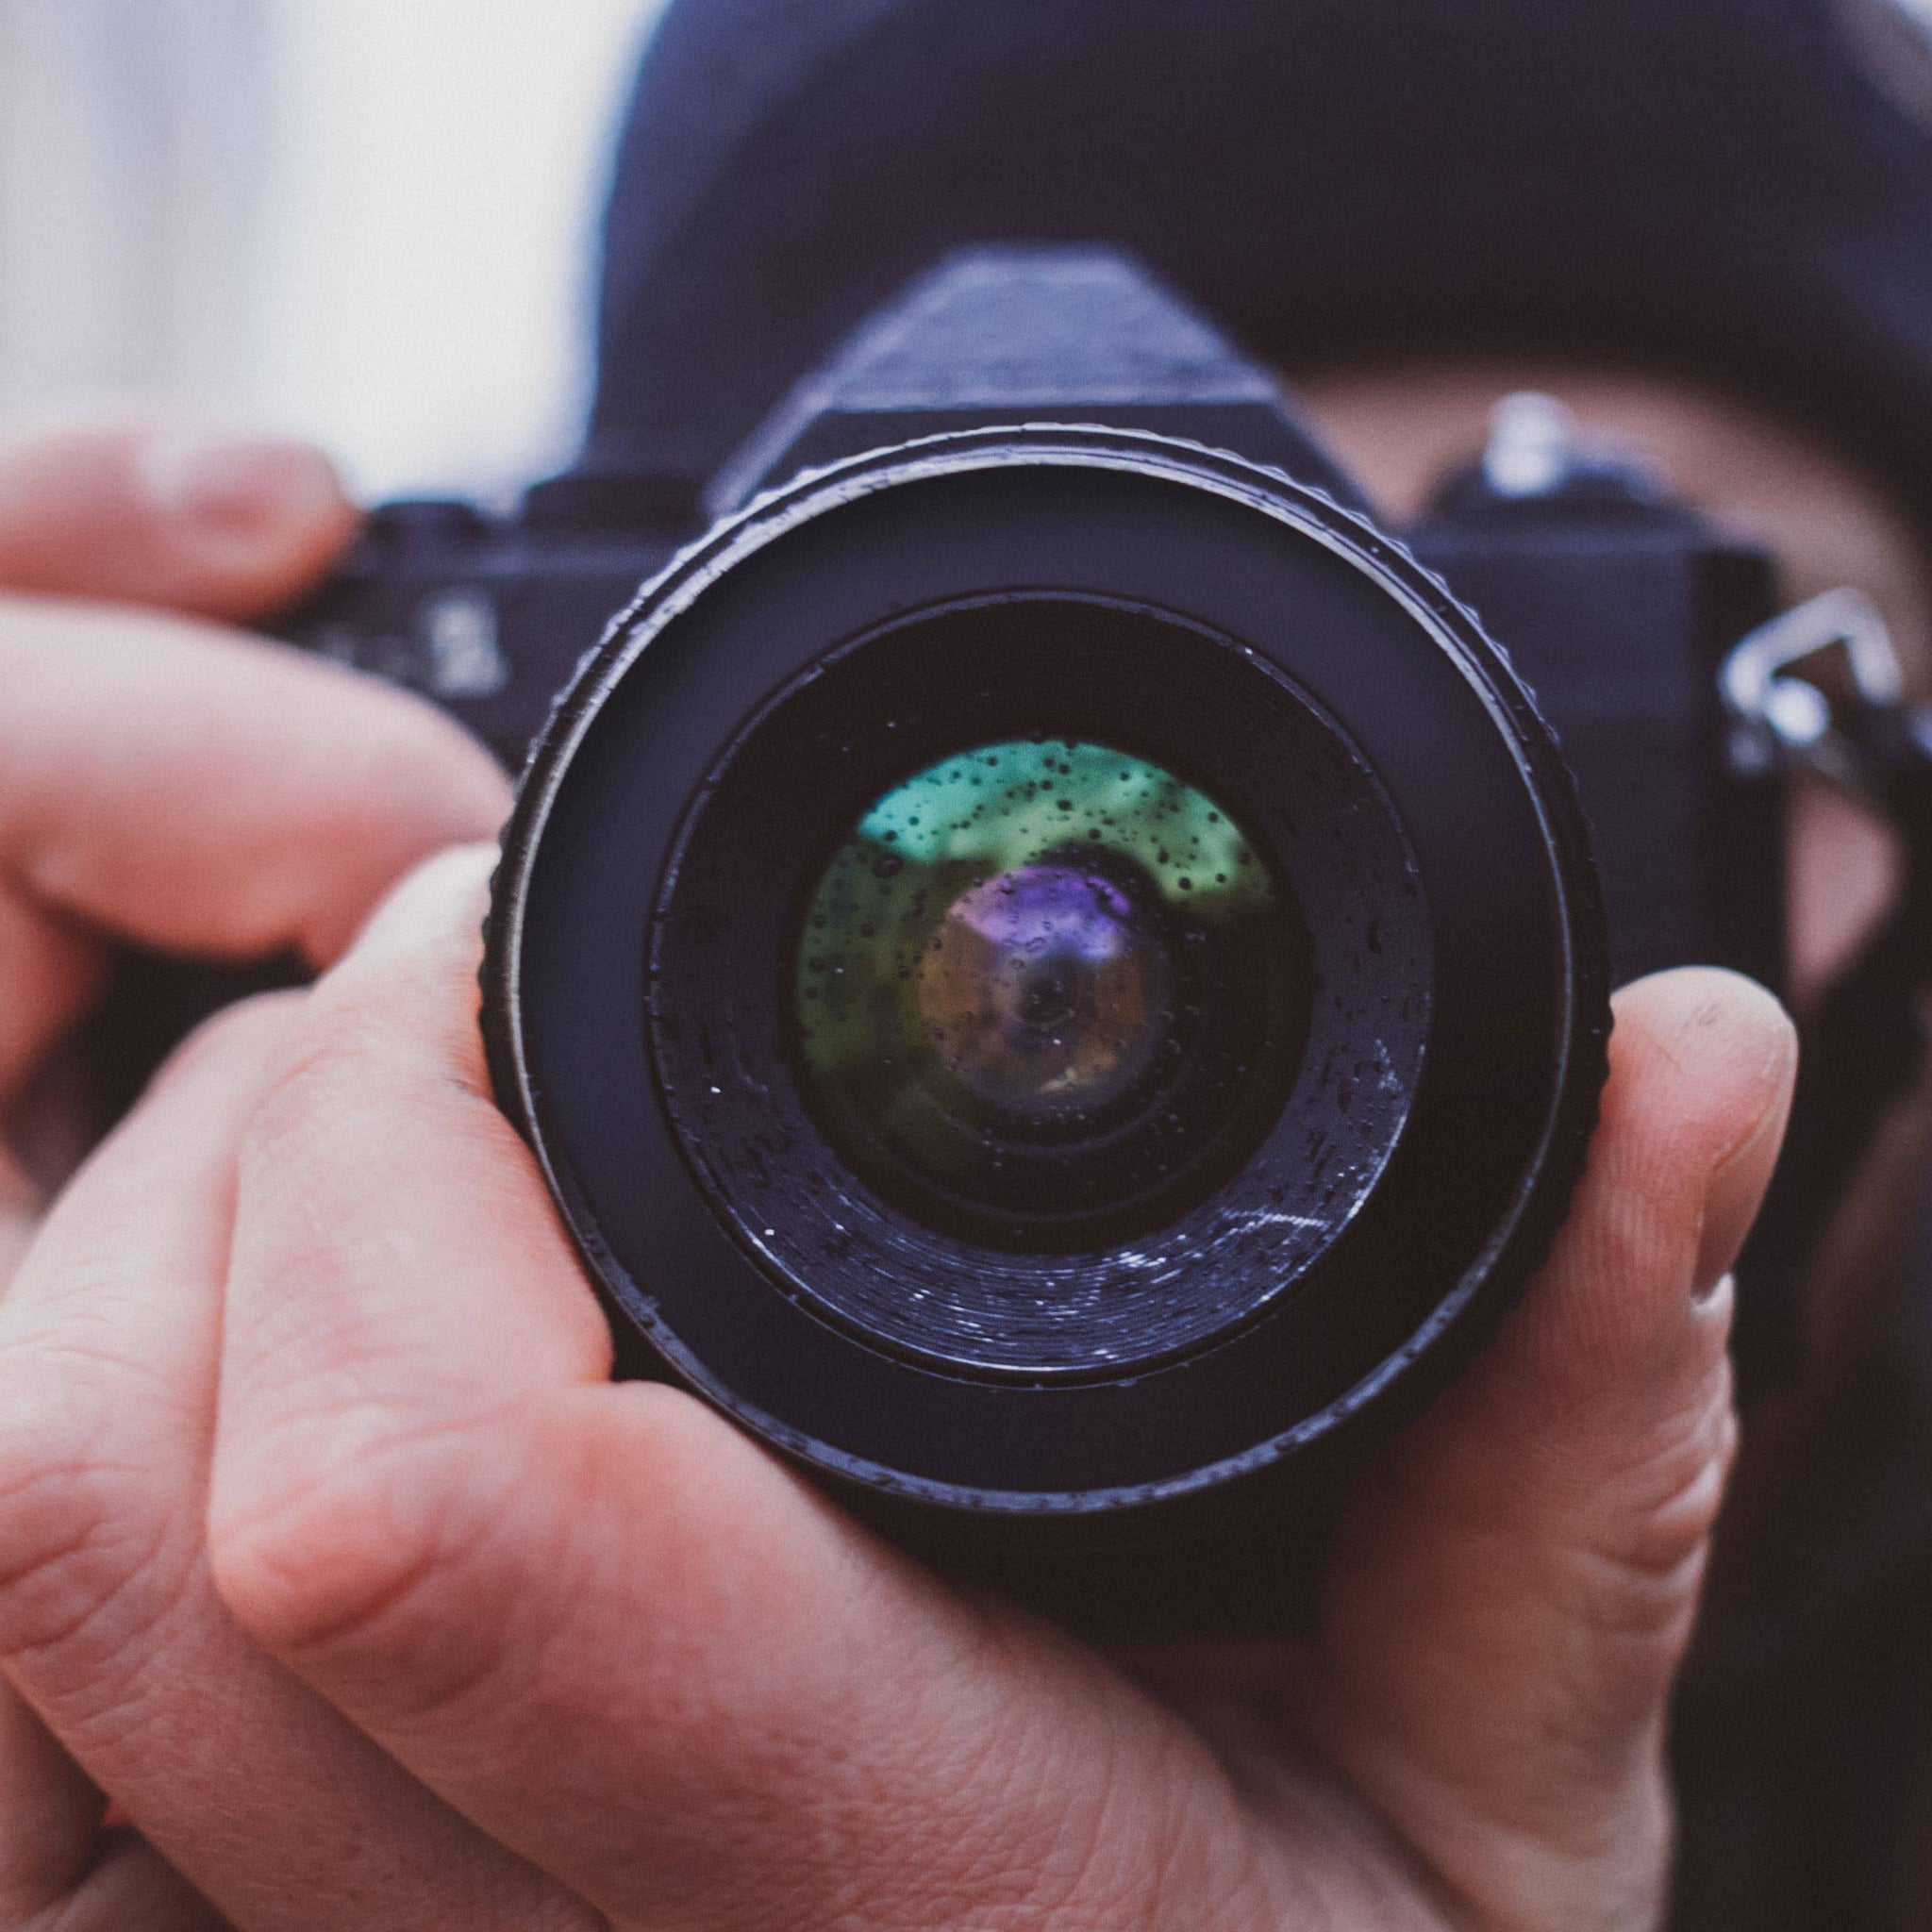 Steps to Becoming a Professional Photographer - How to get into Photography - Becoming a Photographer